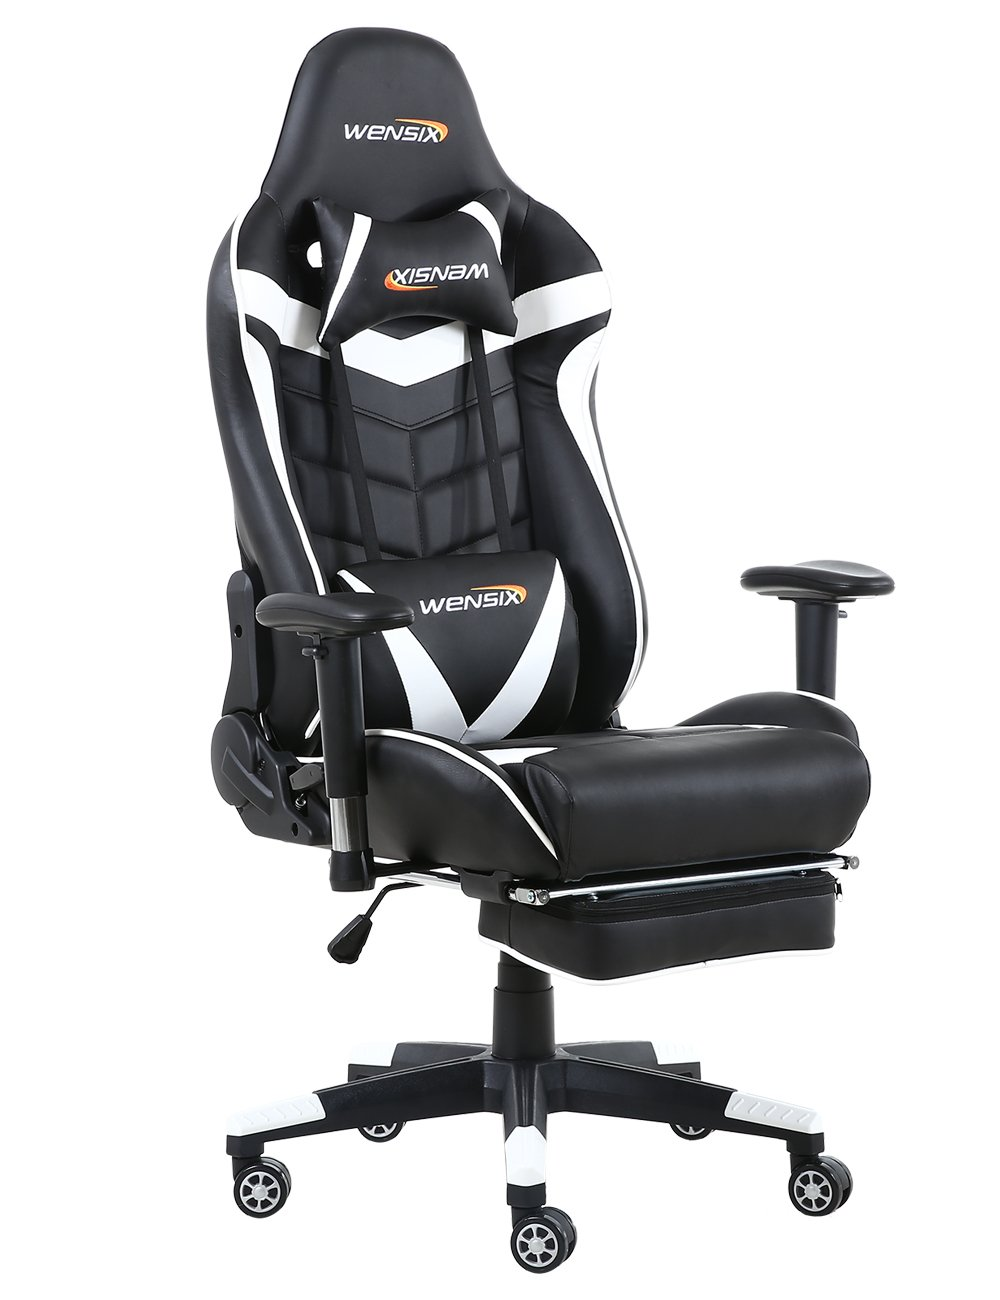 The Wensix Gaming Chair